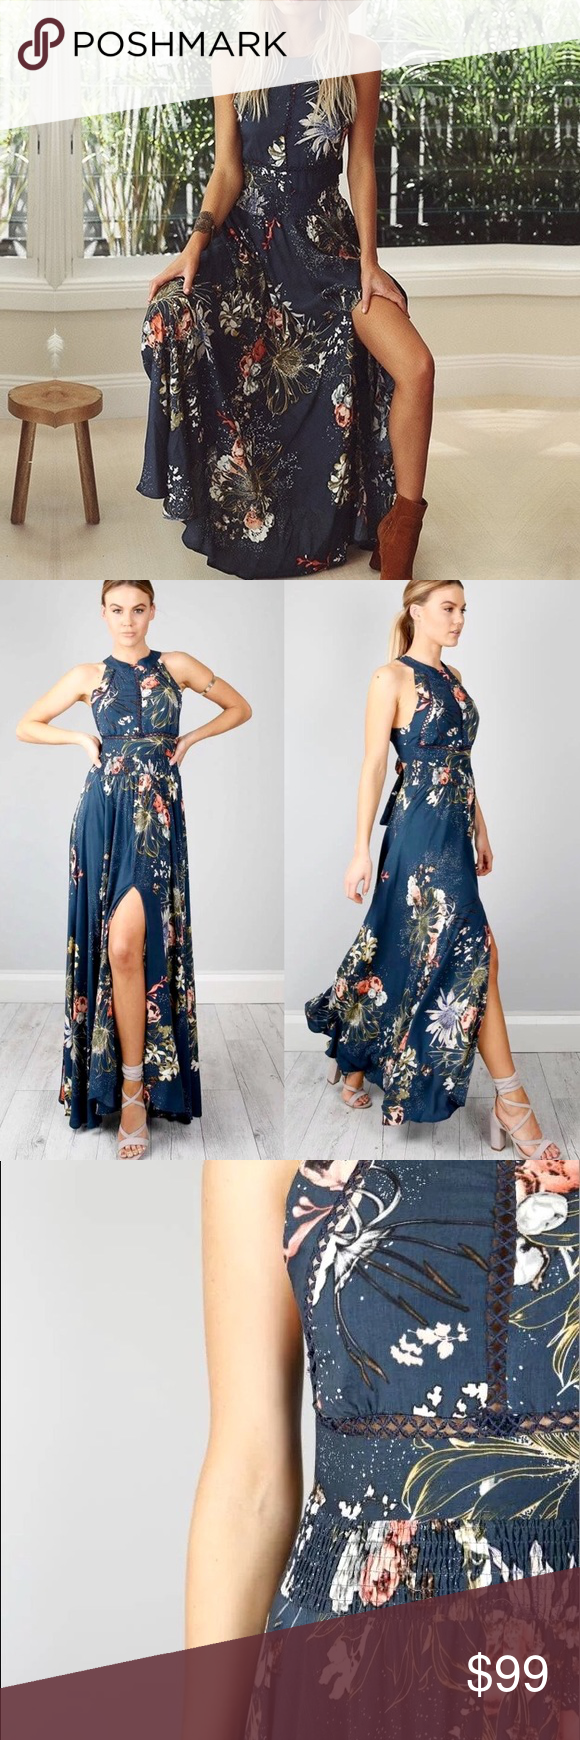 ✨ Open Back Blue Floral Halter Slit Maxi Dress A long aefb2b879